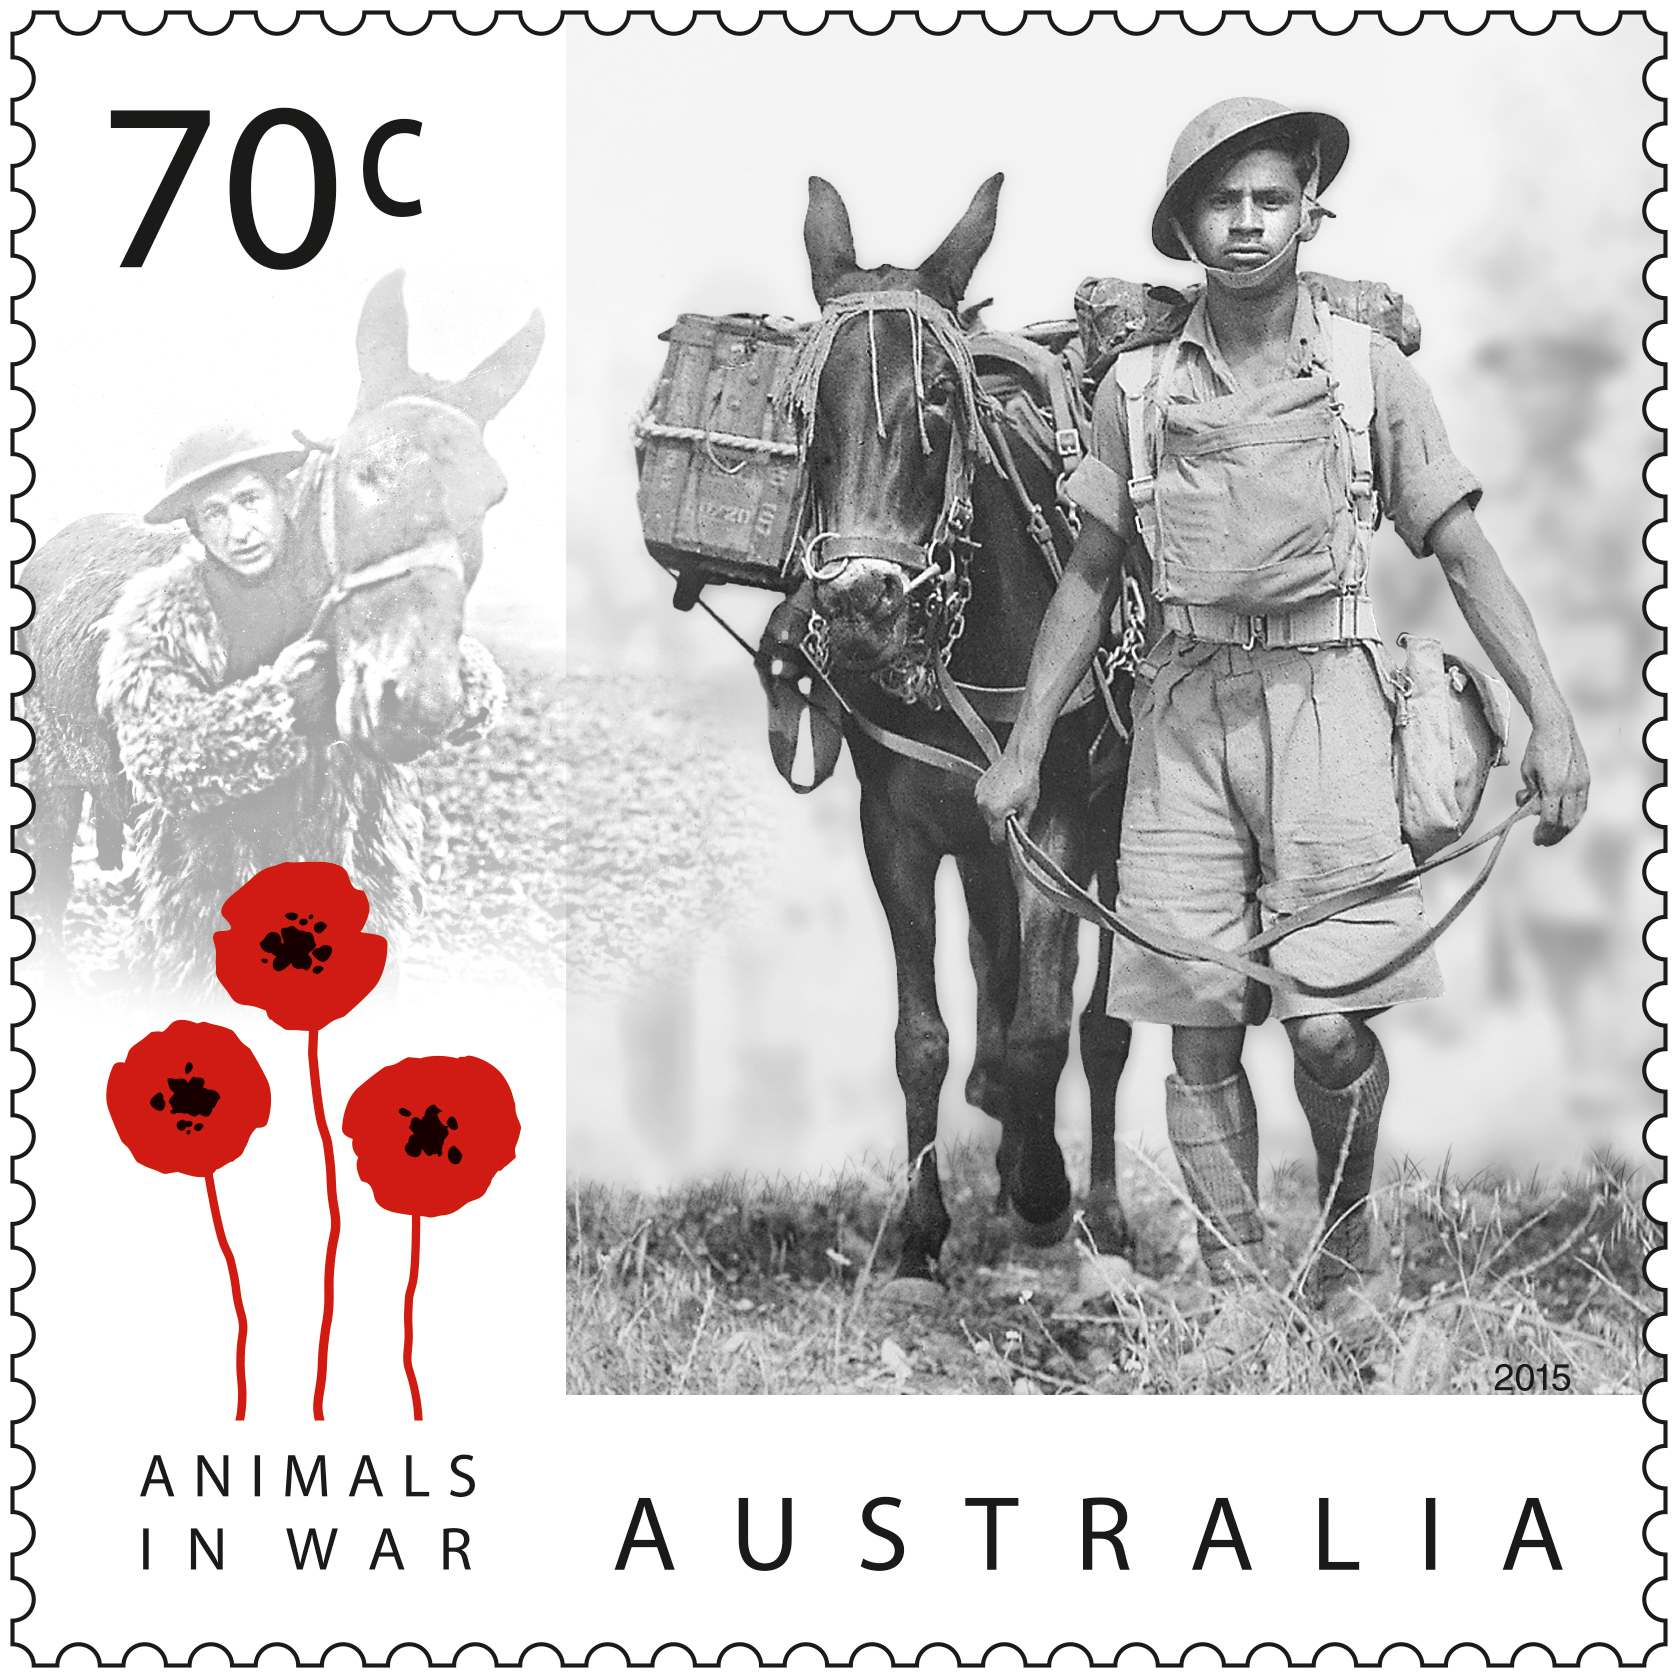 Australia Post commemorates a century of animals in war in new stamp issue